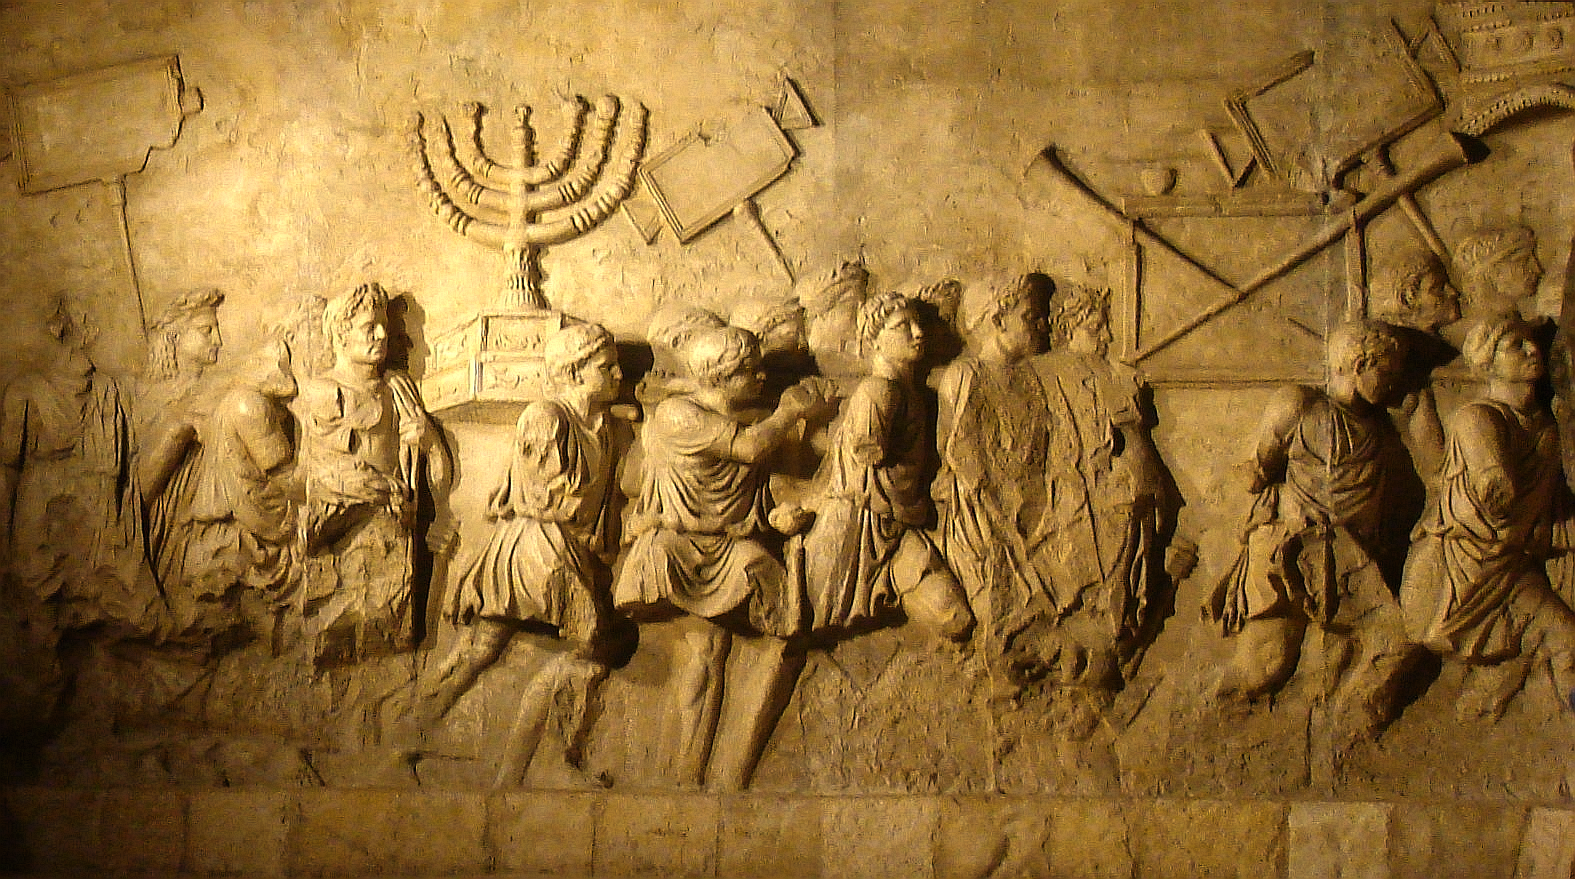 The Arch of Titus depicts the looting after the destruction of the Second Temple, which the holiday of Tisha B'Av commemorates.